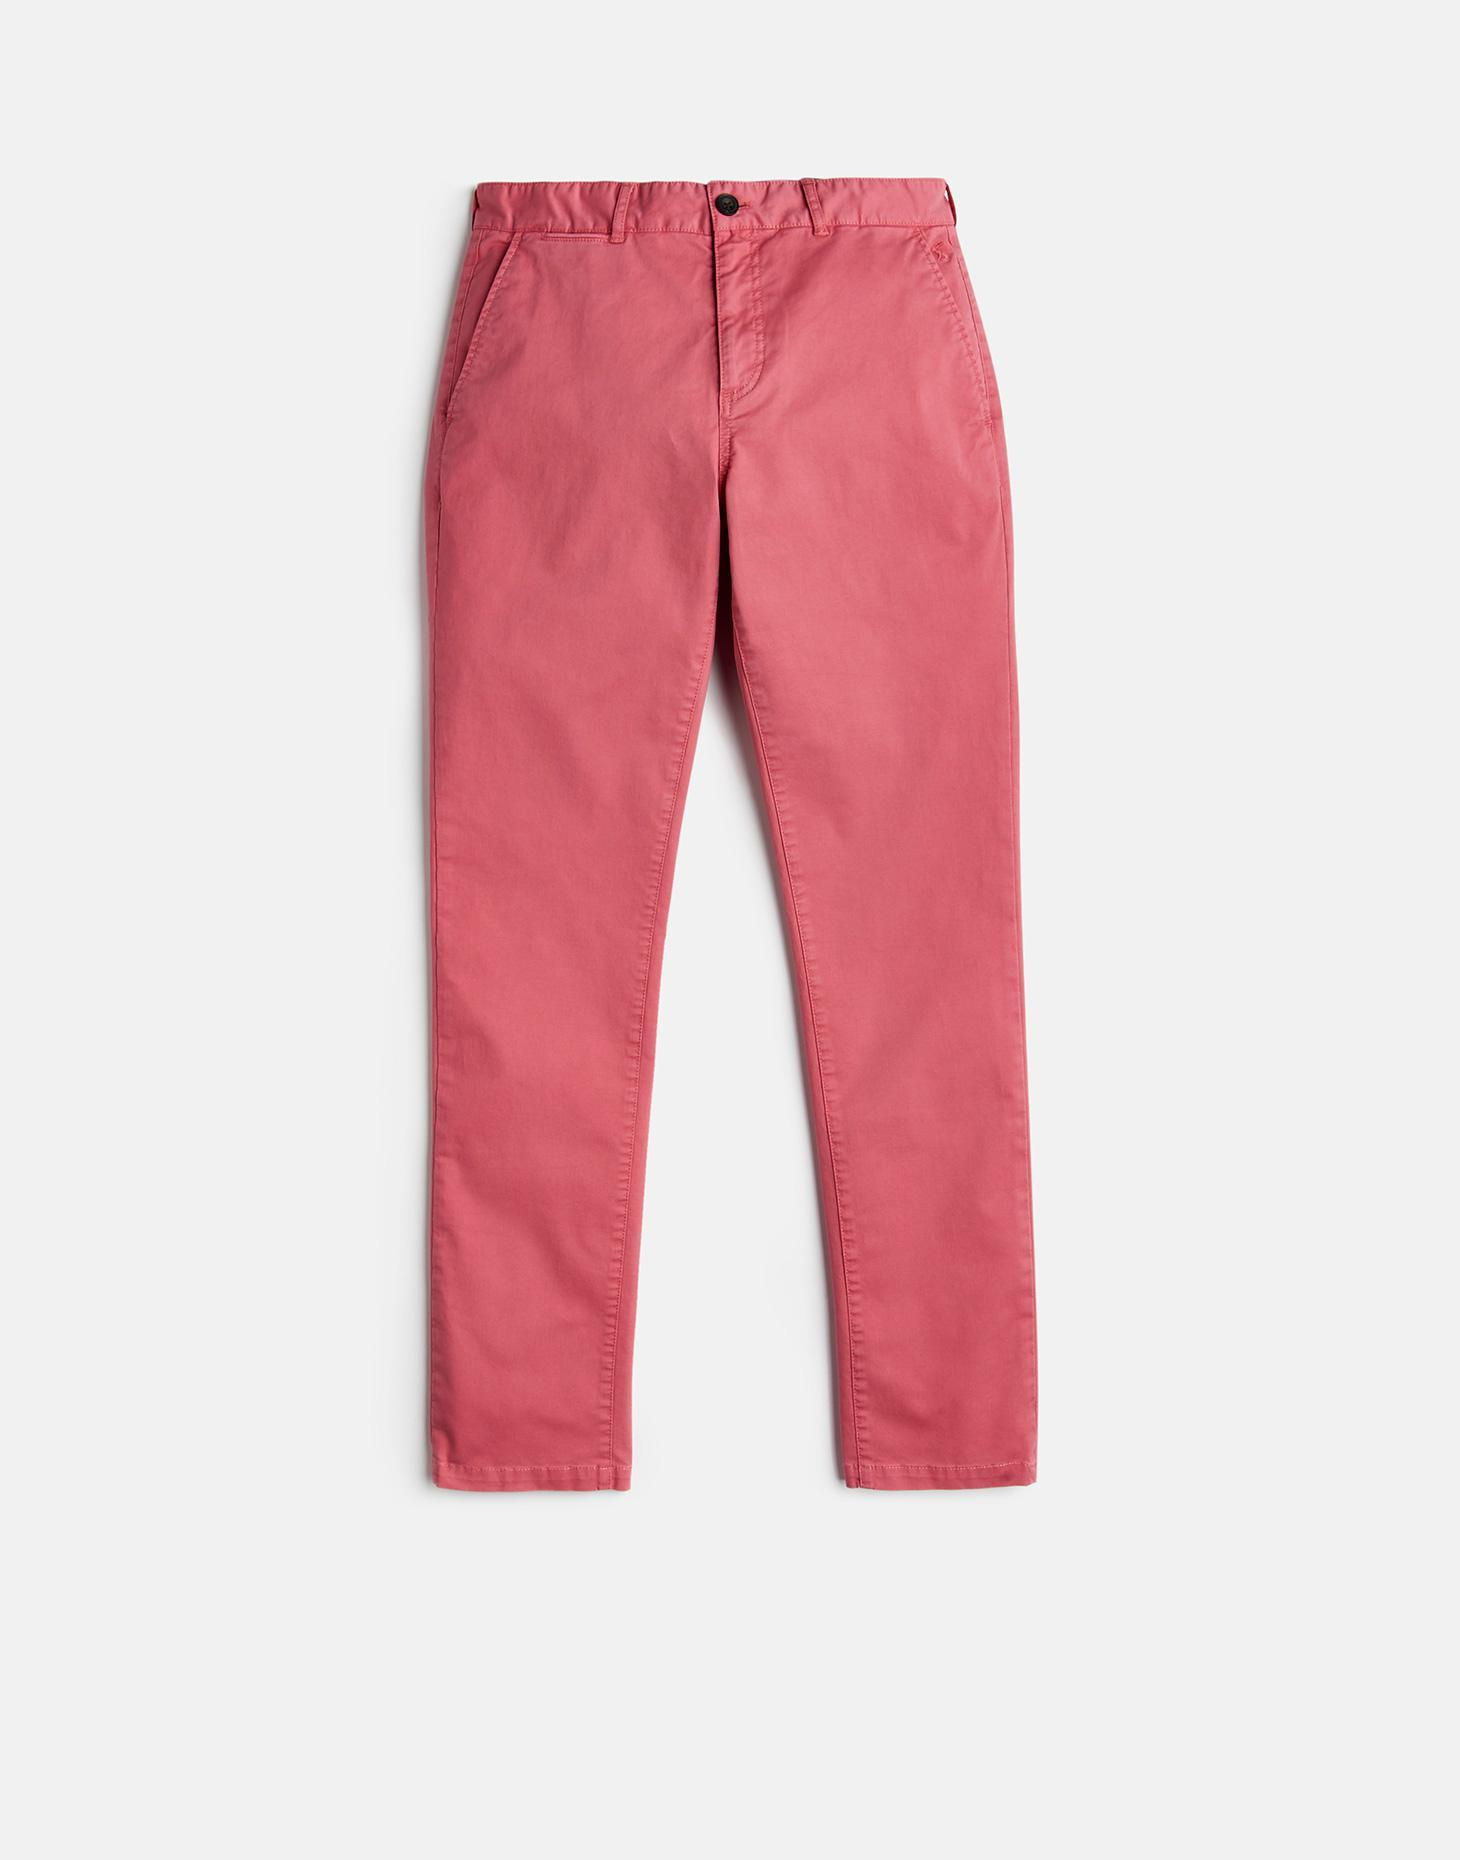 Joules Slate Rose LAUNCHINO Mens Chinos